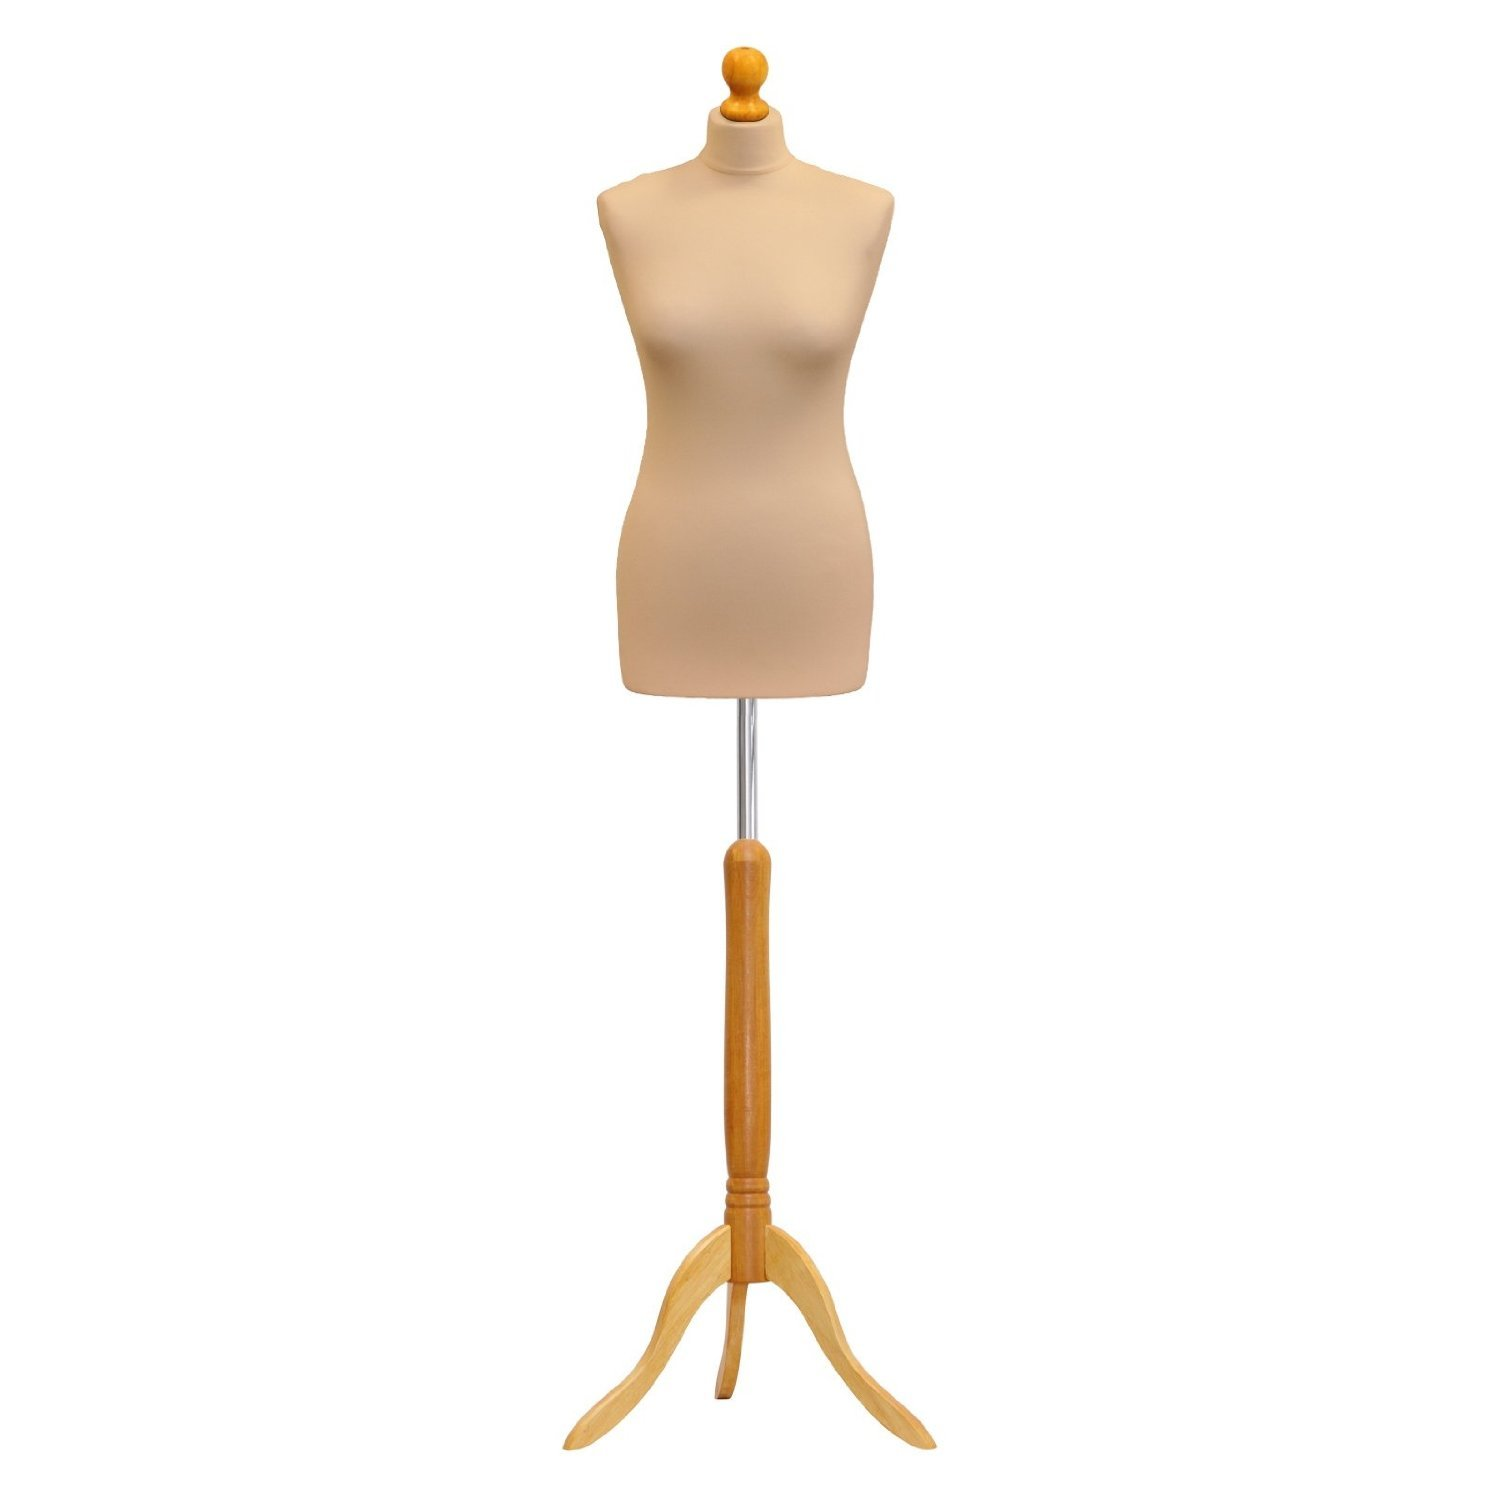 Female Tailors Dummy Cream Size 10/12 Dressmakers Fashion Students Mannequin Display Bust With A Light Wood Base